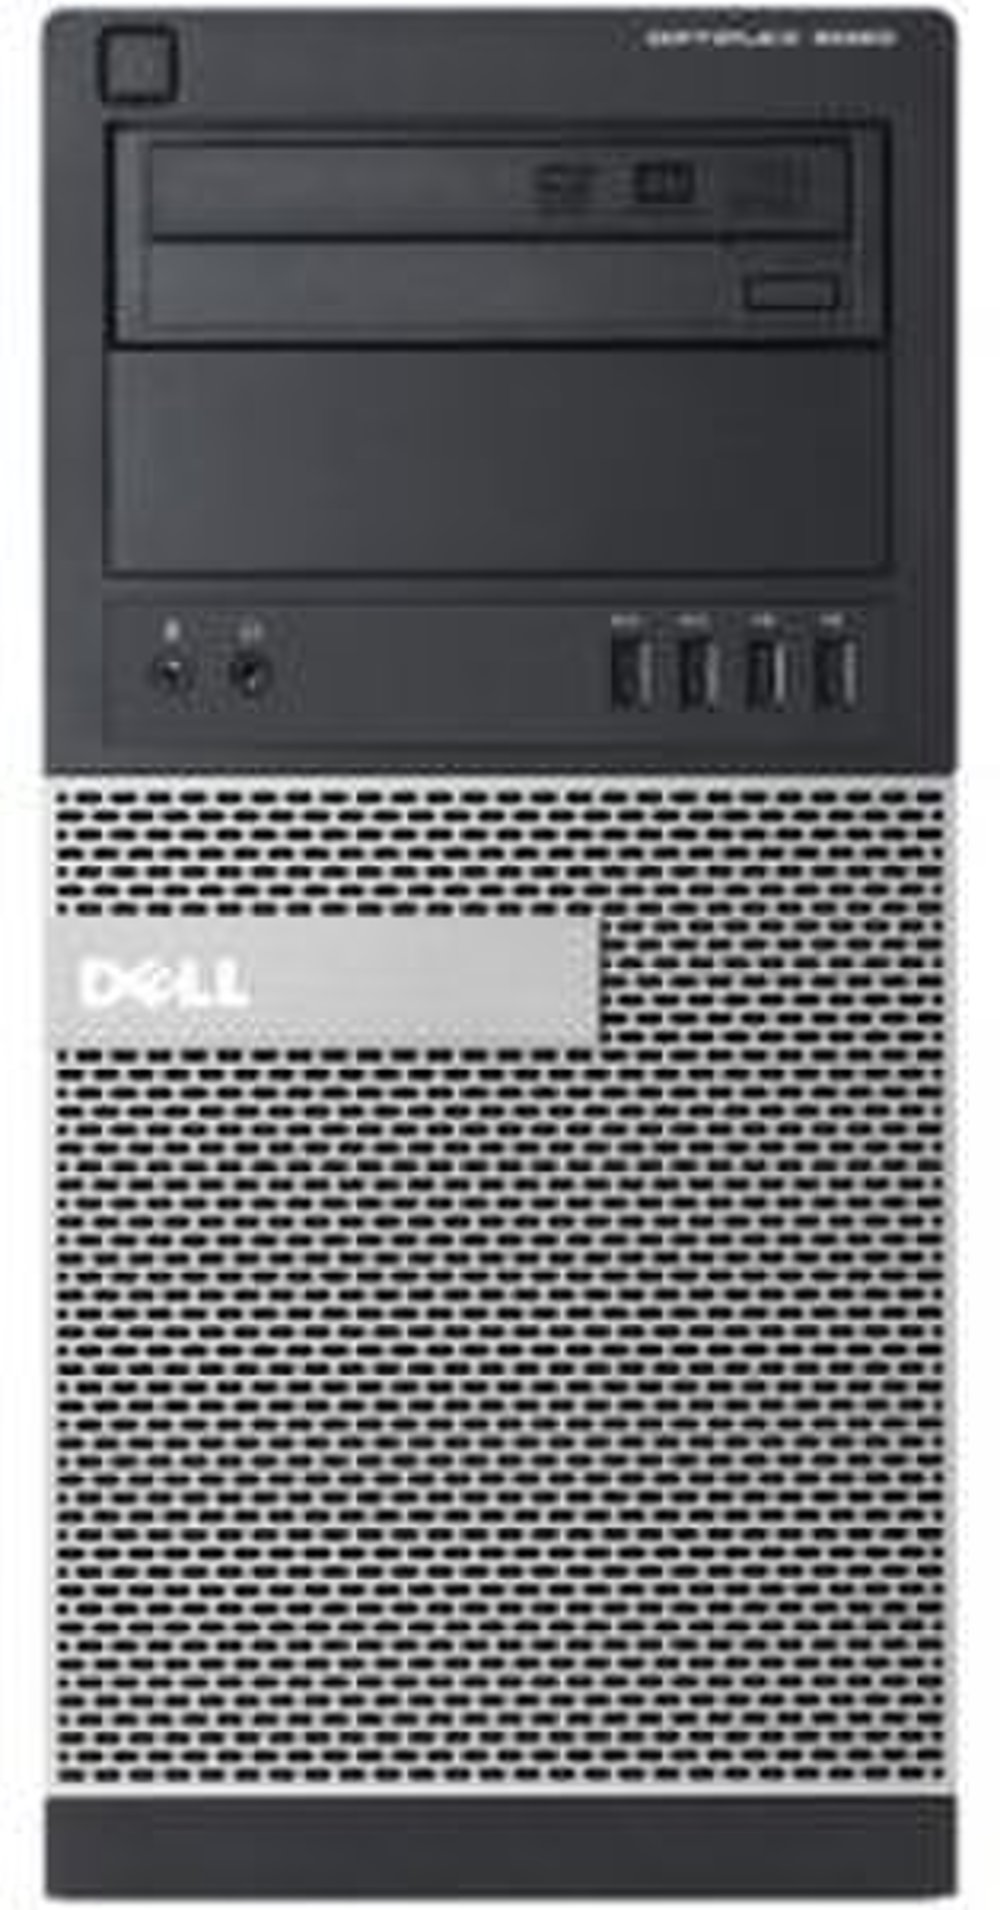 Dell OptiPlex 9020 Review - Pros, Cons and Verdict